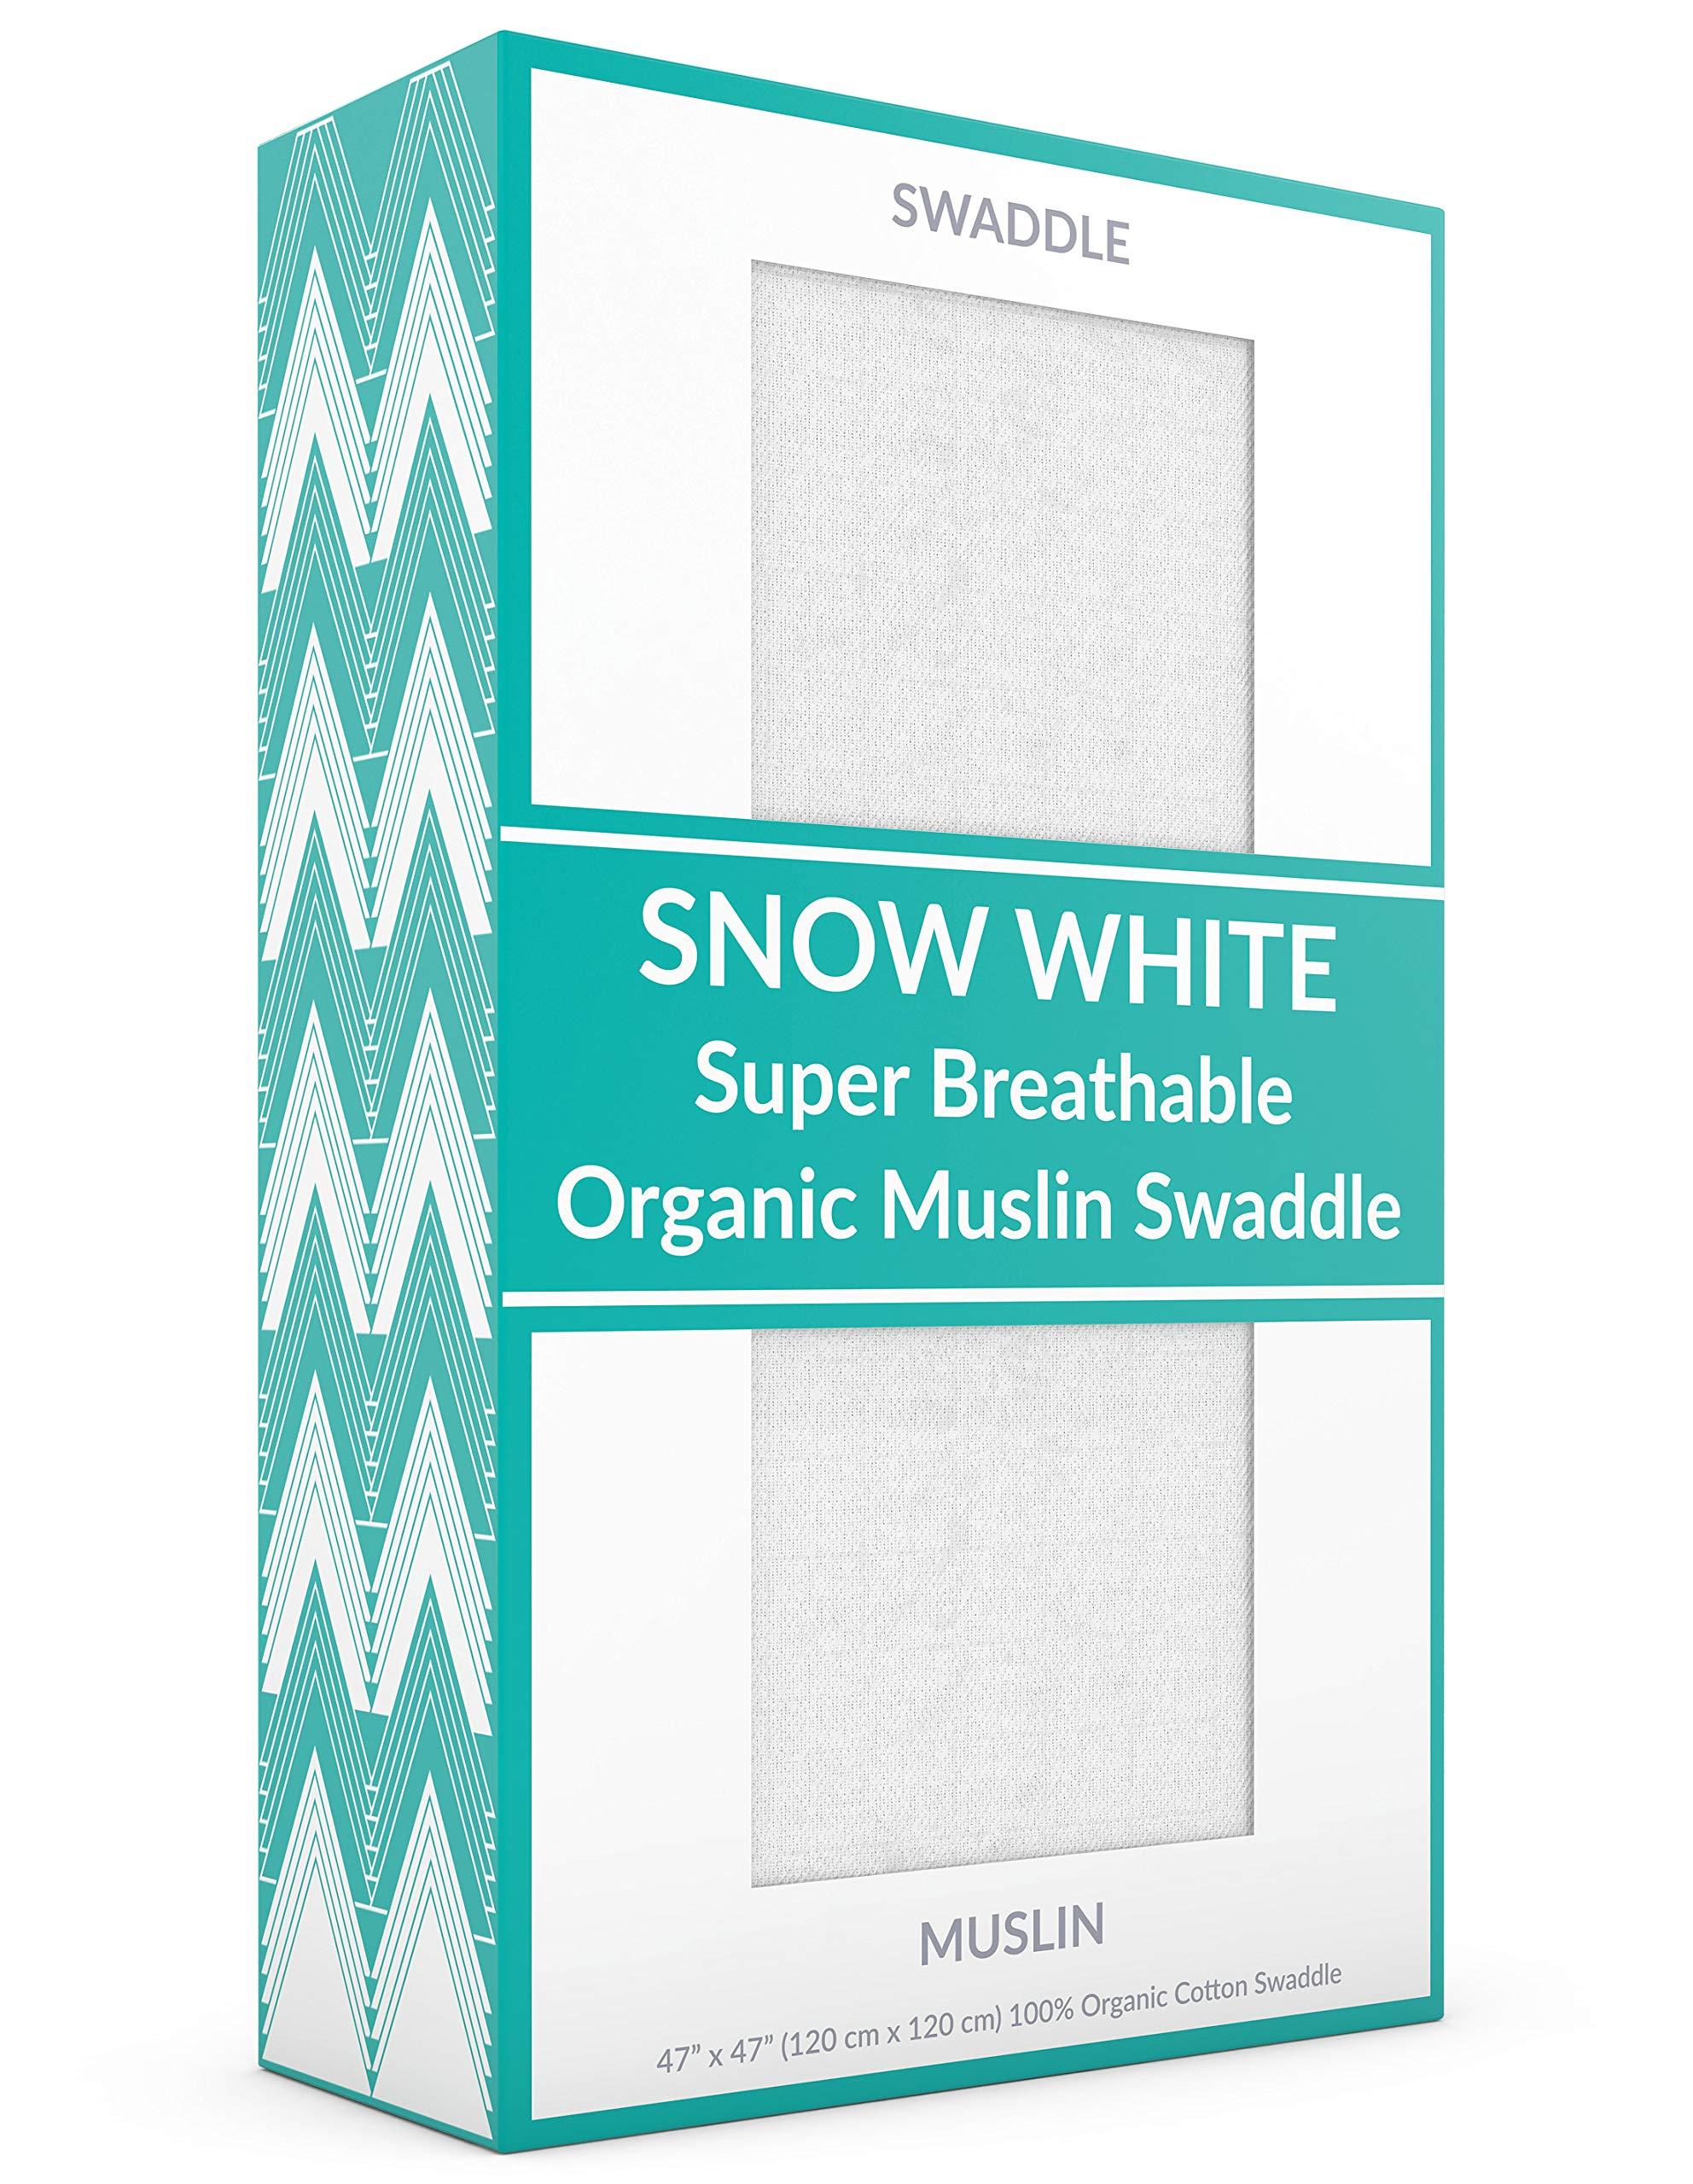 CON.TT Premium Muslin Swaddle Baby Blanket | 100% Organic Cotton Muslin | Super Breathable & Thin Layer | Single Pack of Naming Convention | Snow White